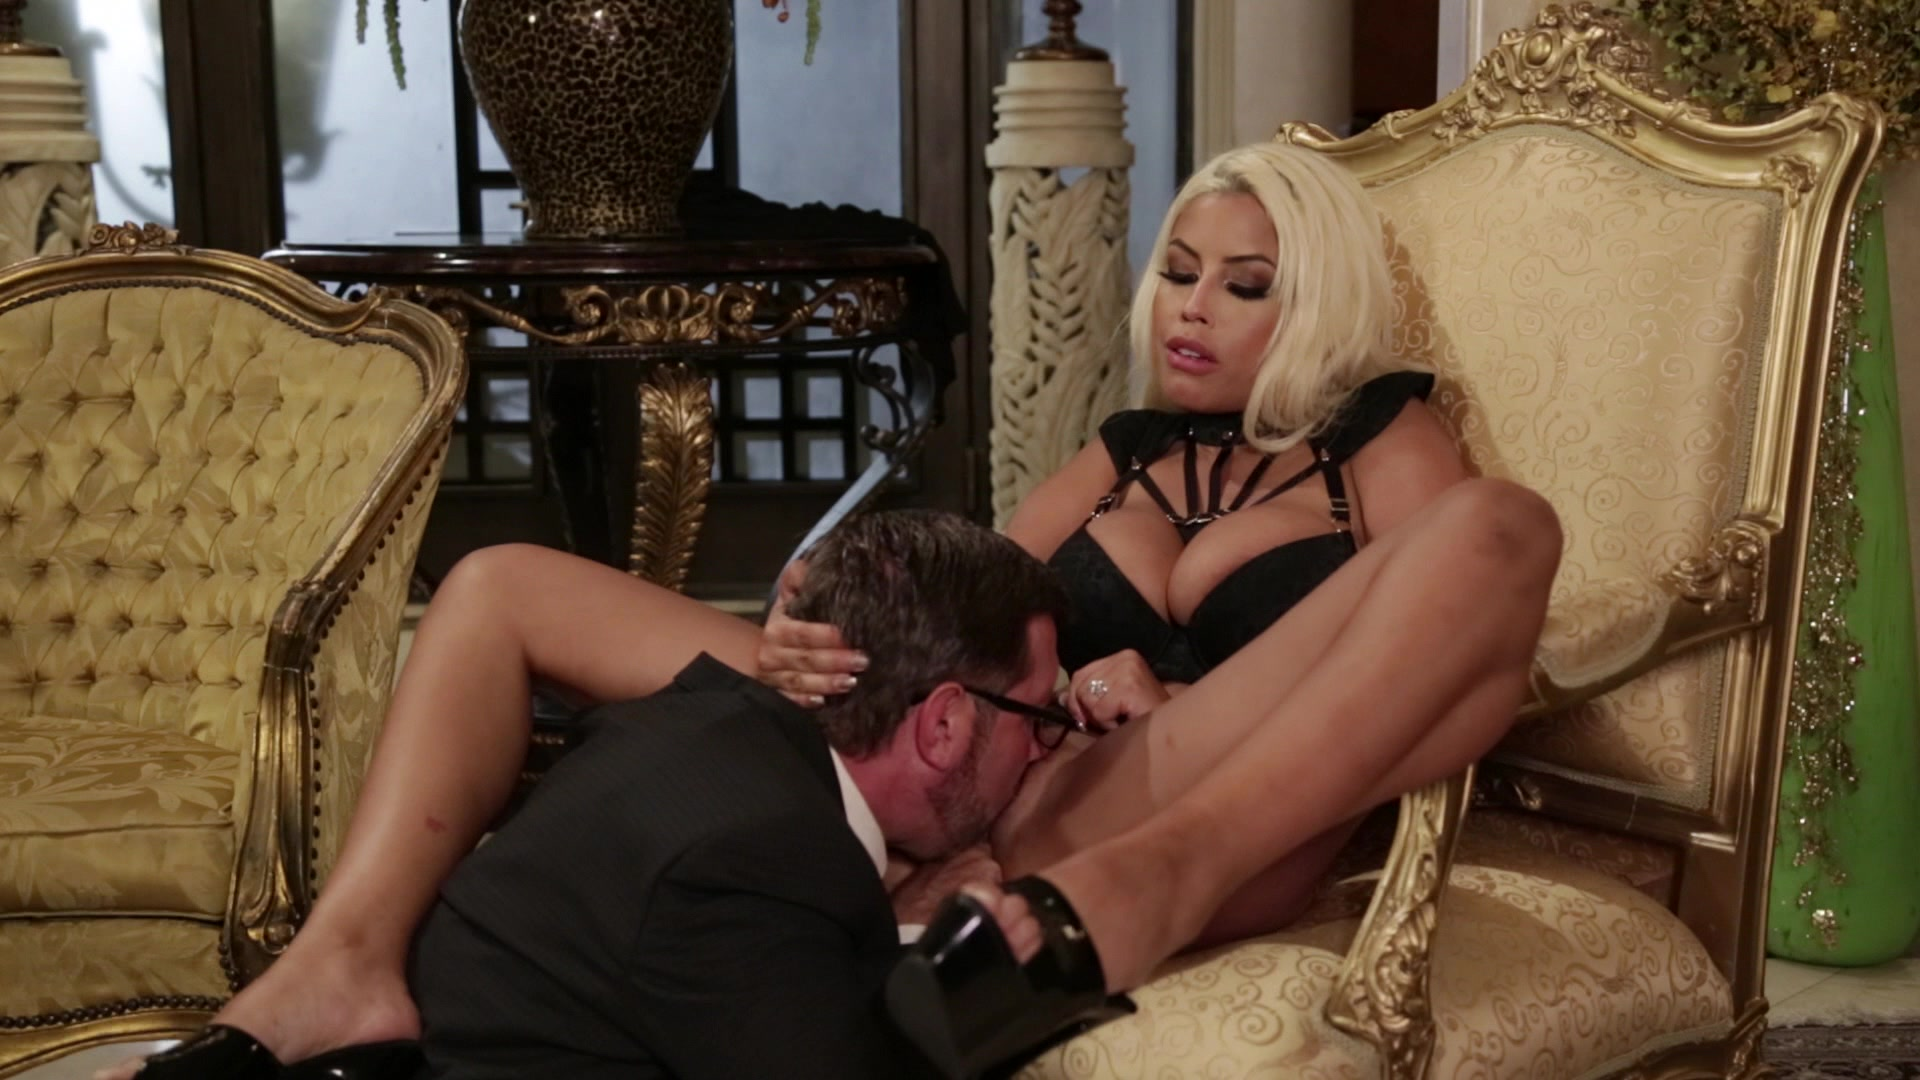 Scene with Jessica Drake - image 12 out of 20